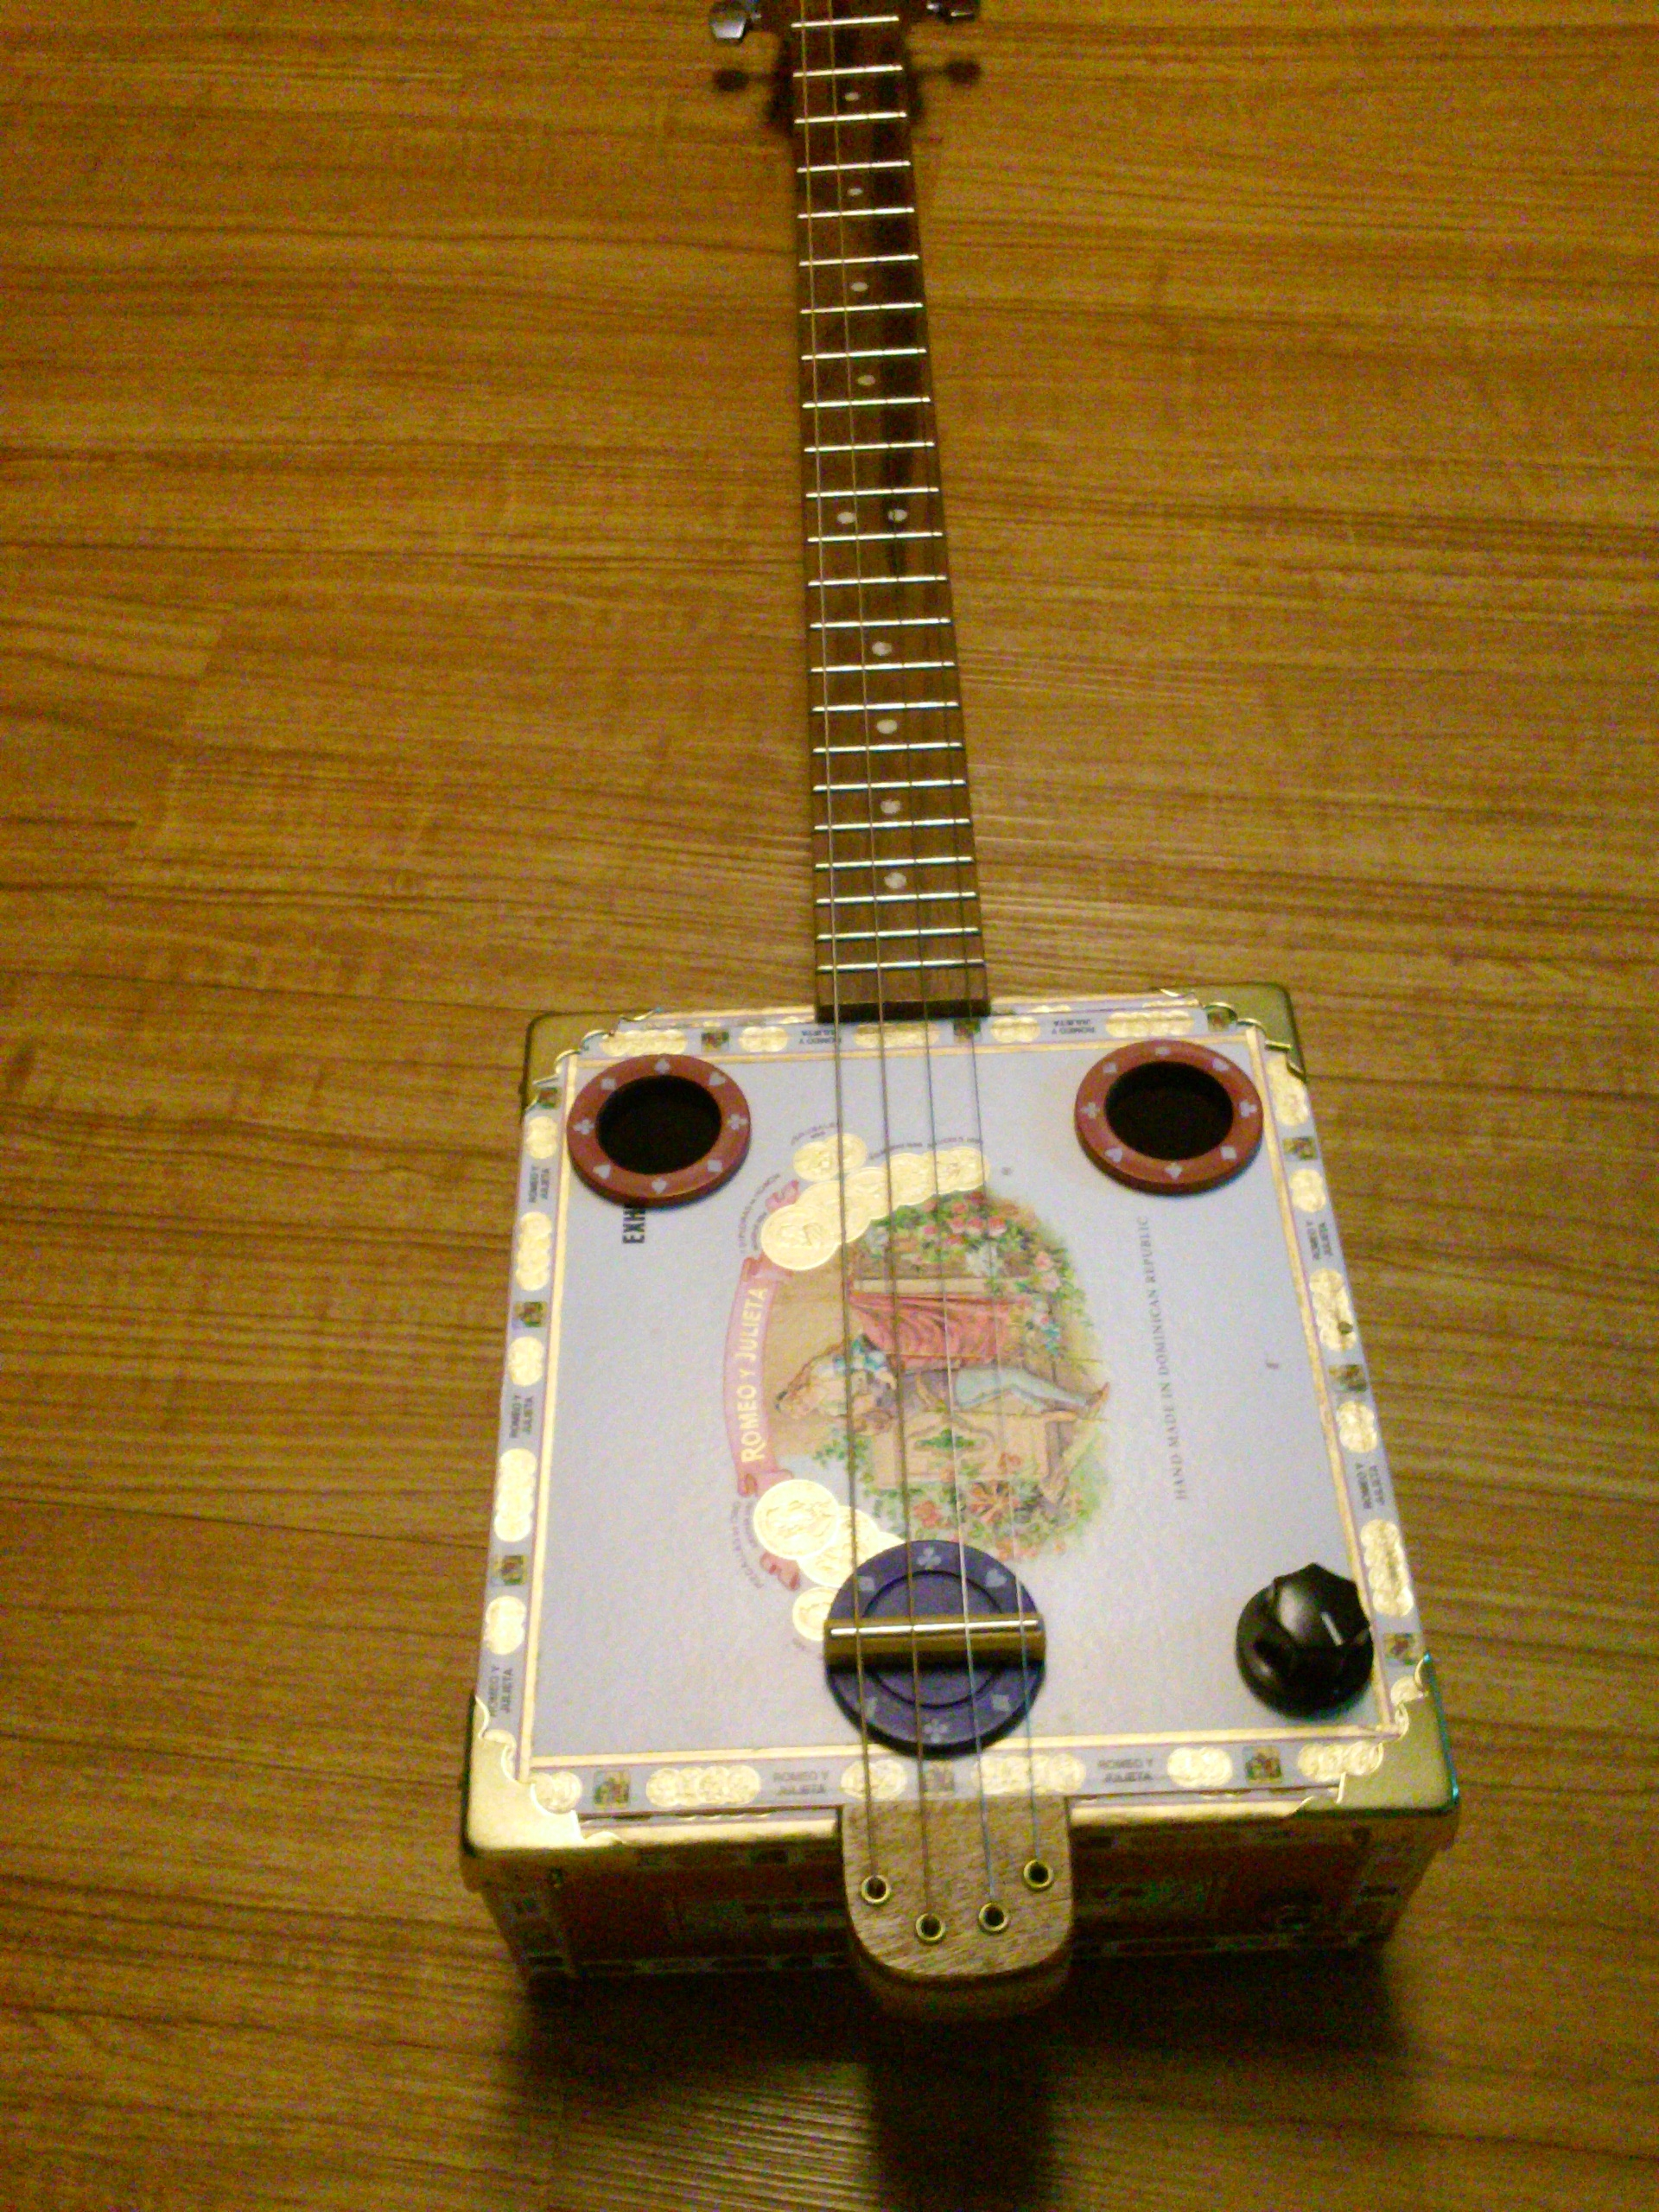 Rewire Guitar Jack Free Download Wiring Diagrams Pictures Wiring